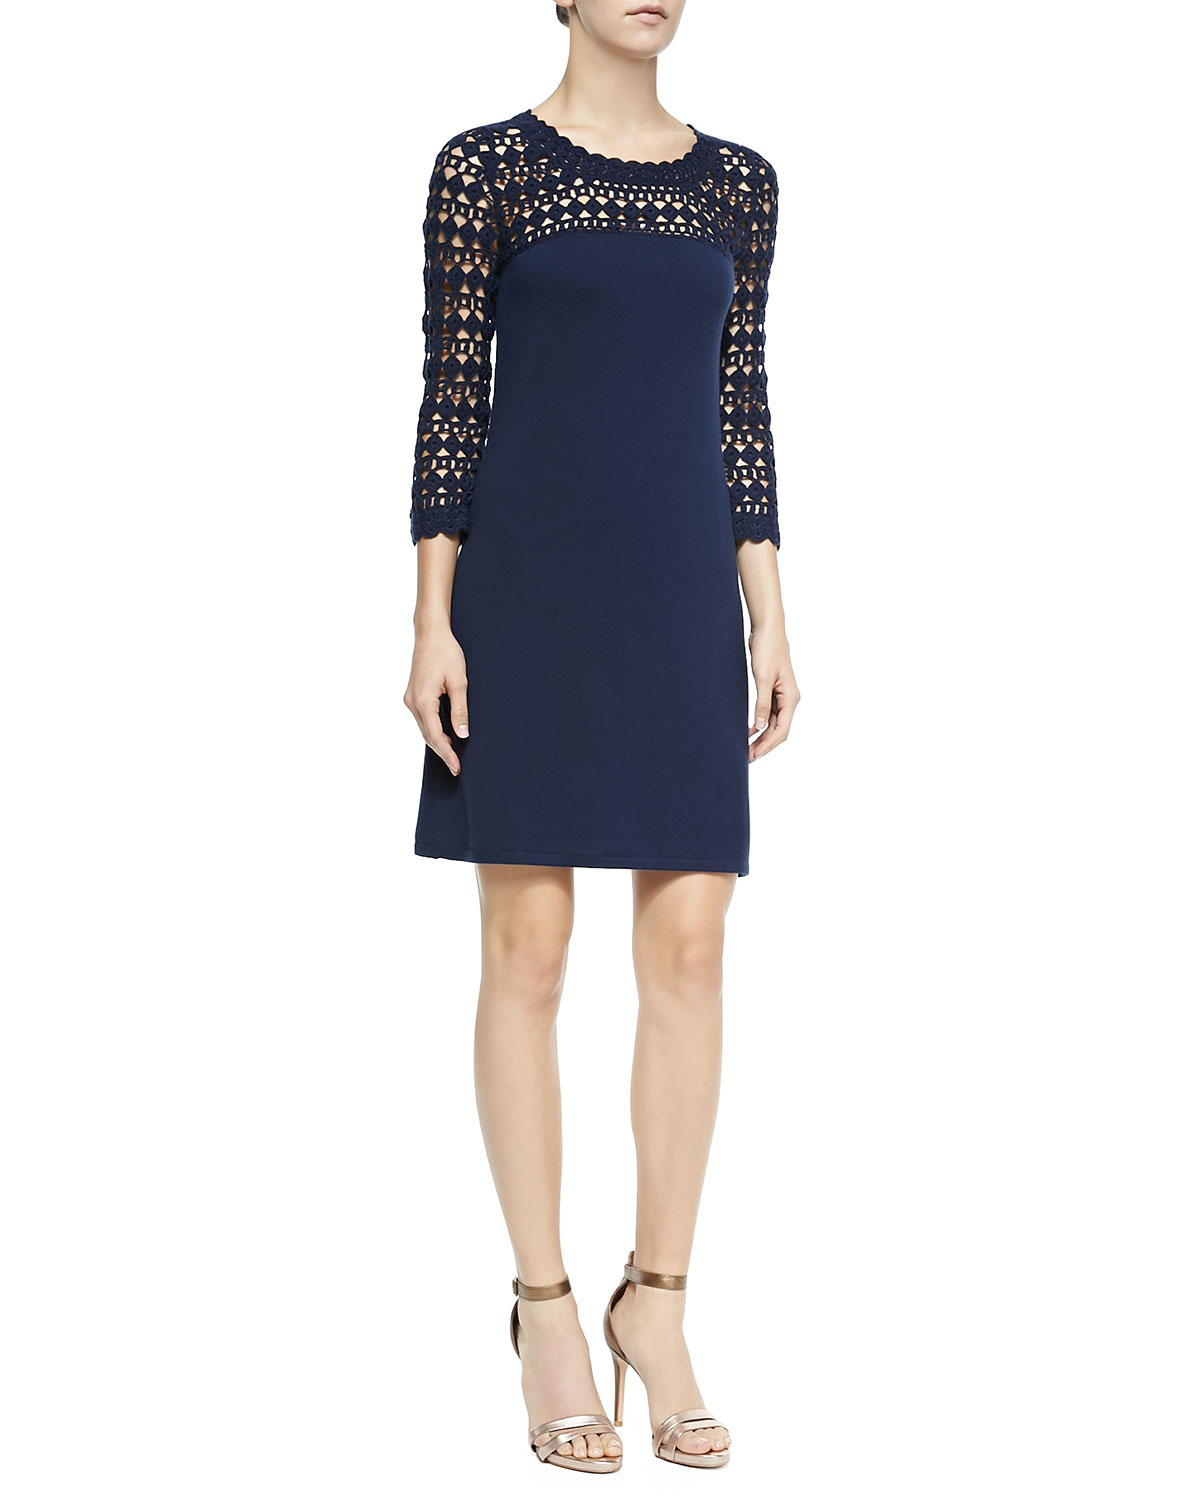 Kariana Wool Crochet Dress, True Navy